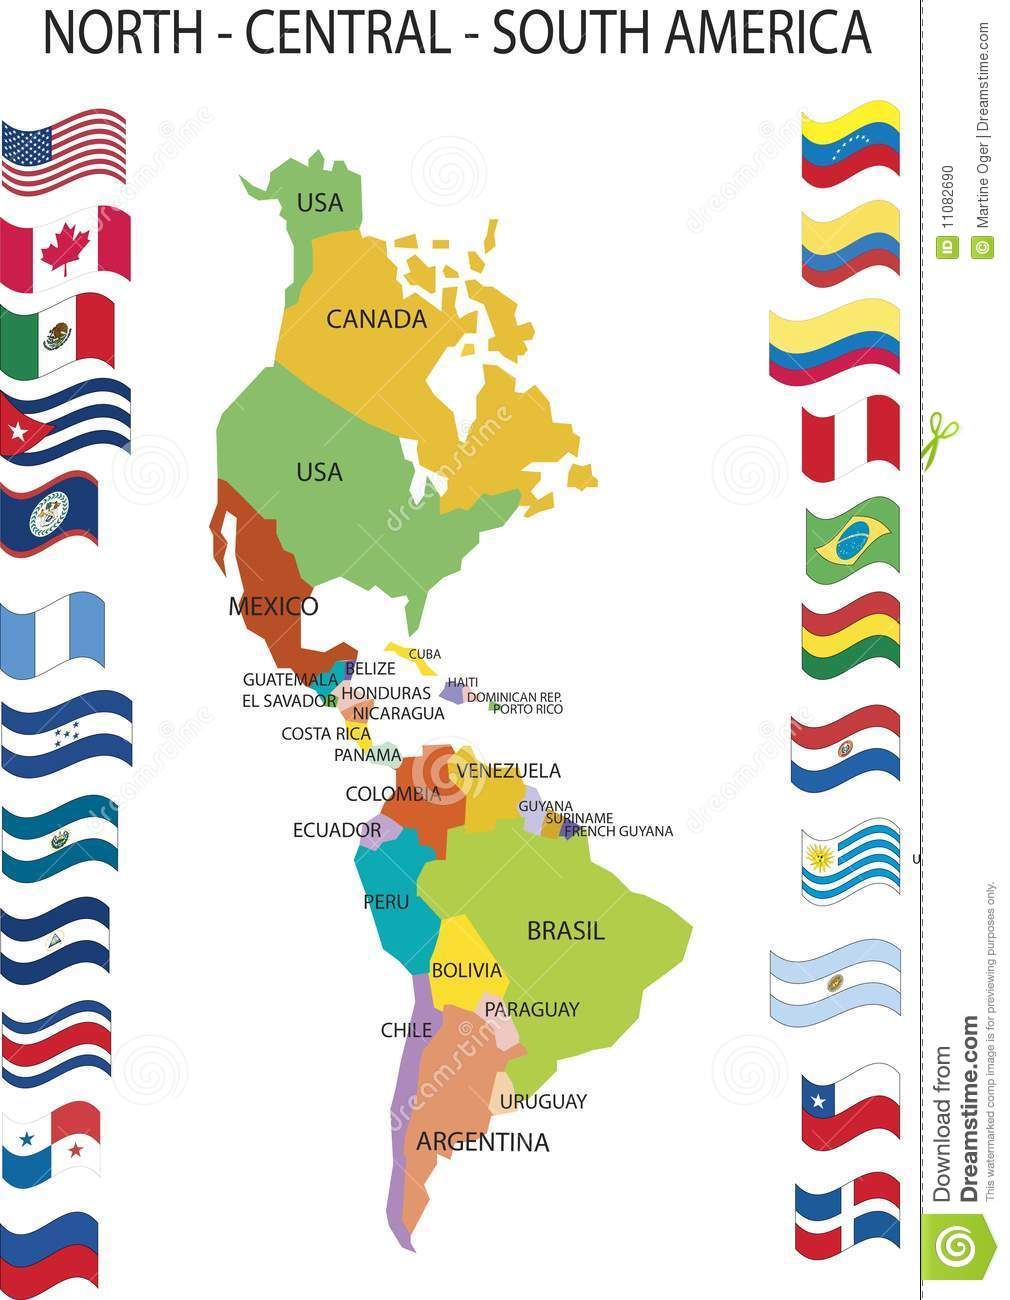 North Central South America Stock Photo Image - North and south america map